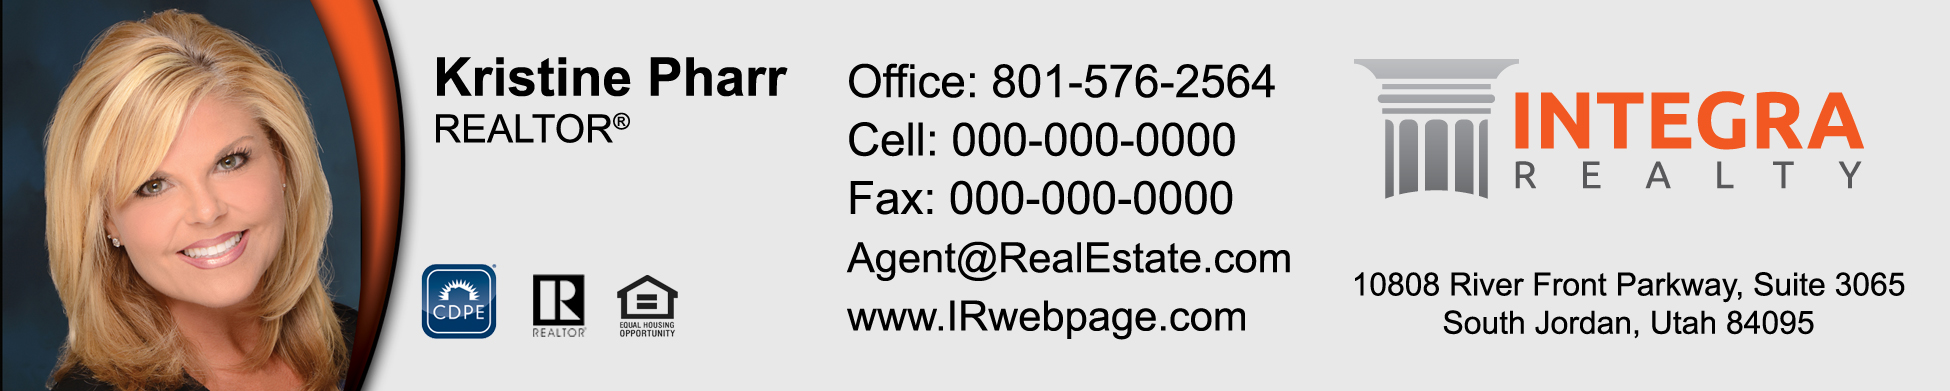 North Star Real Estate email signature